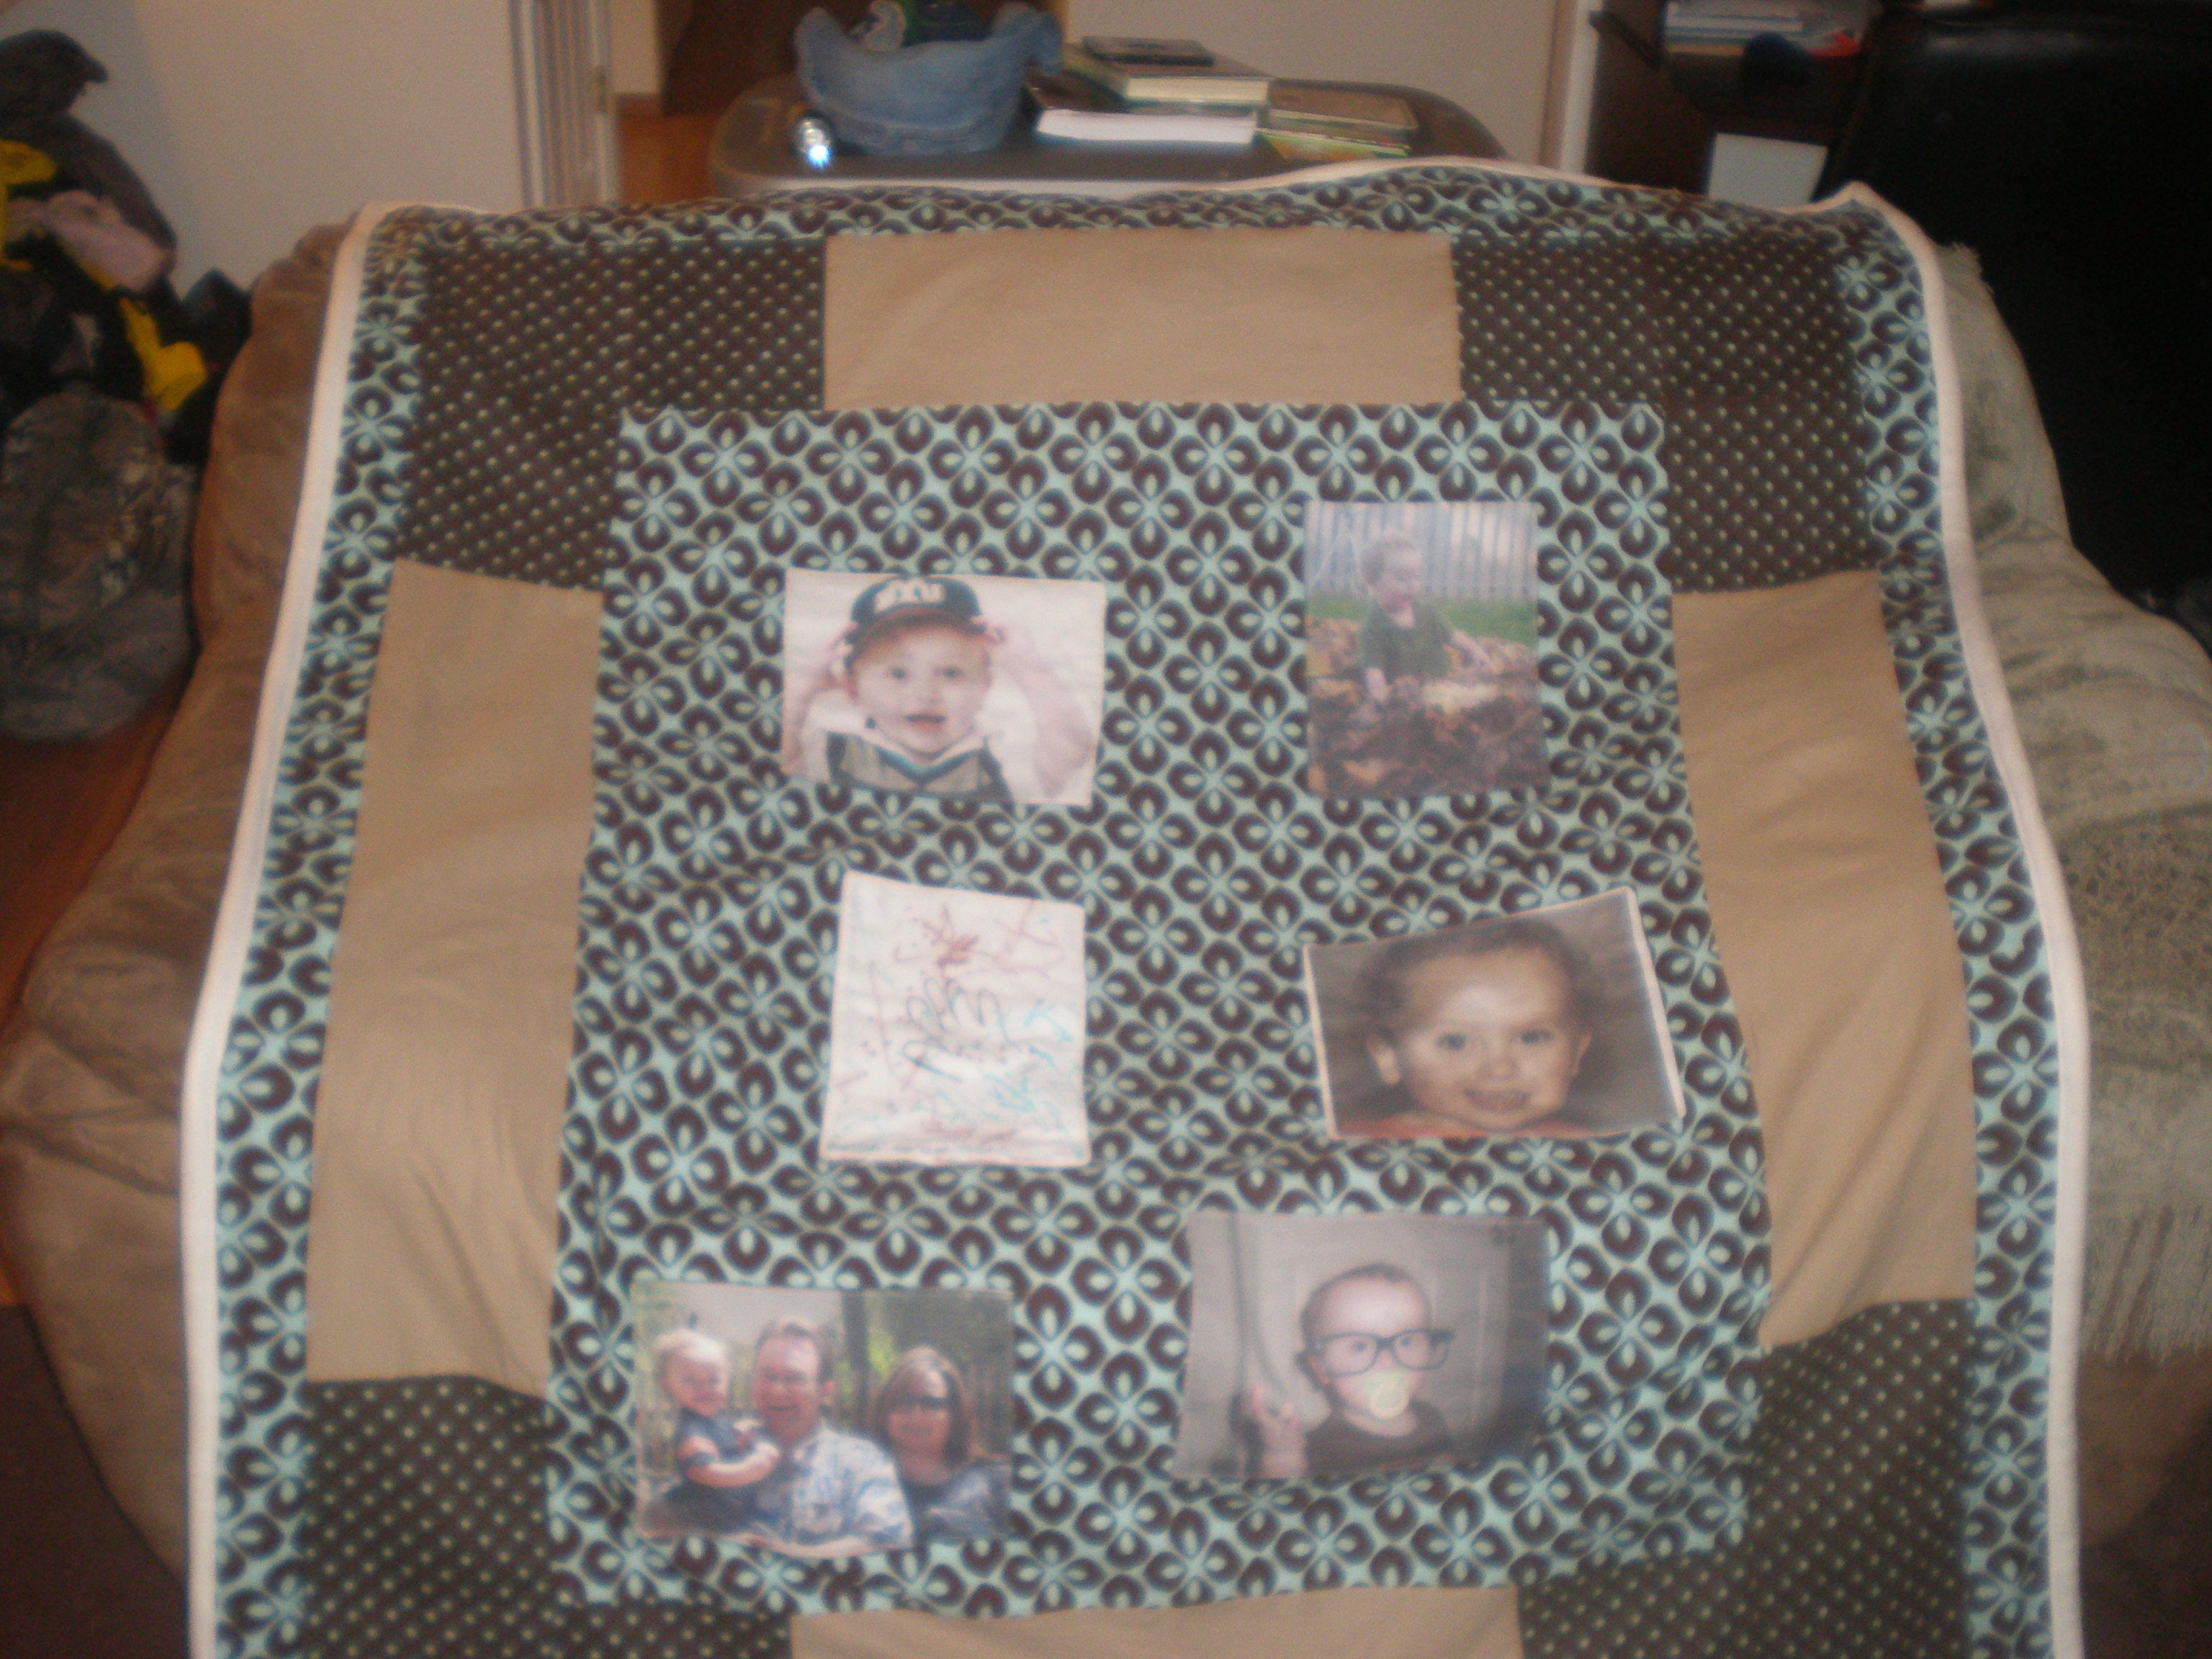 I made this photo quilt for my parents Christmas present, it was a lot easier than I thought it would be. Turned out so cozy